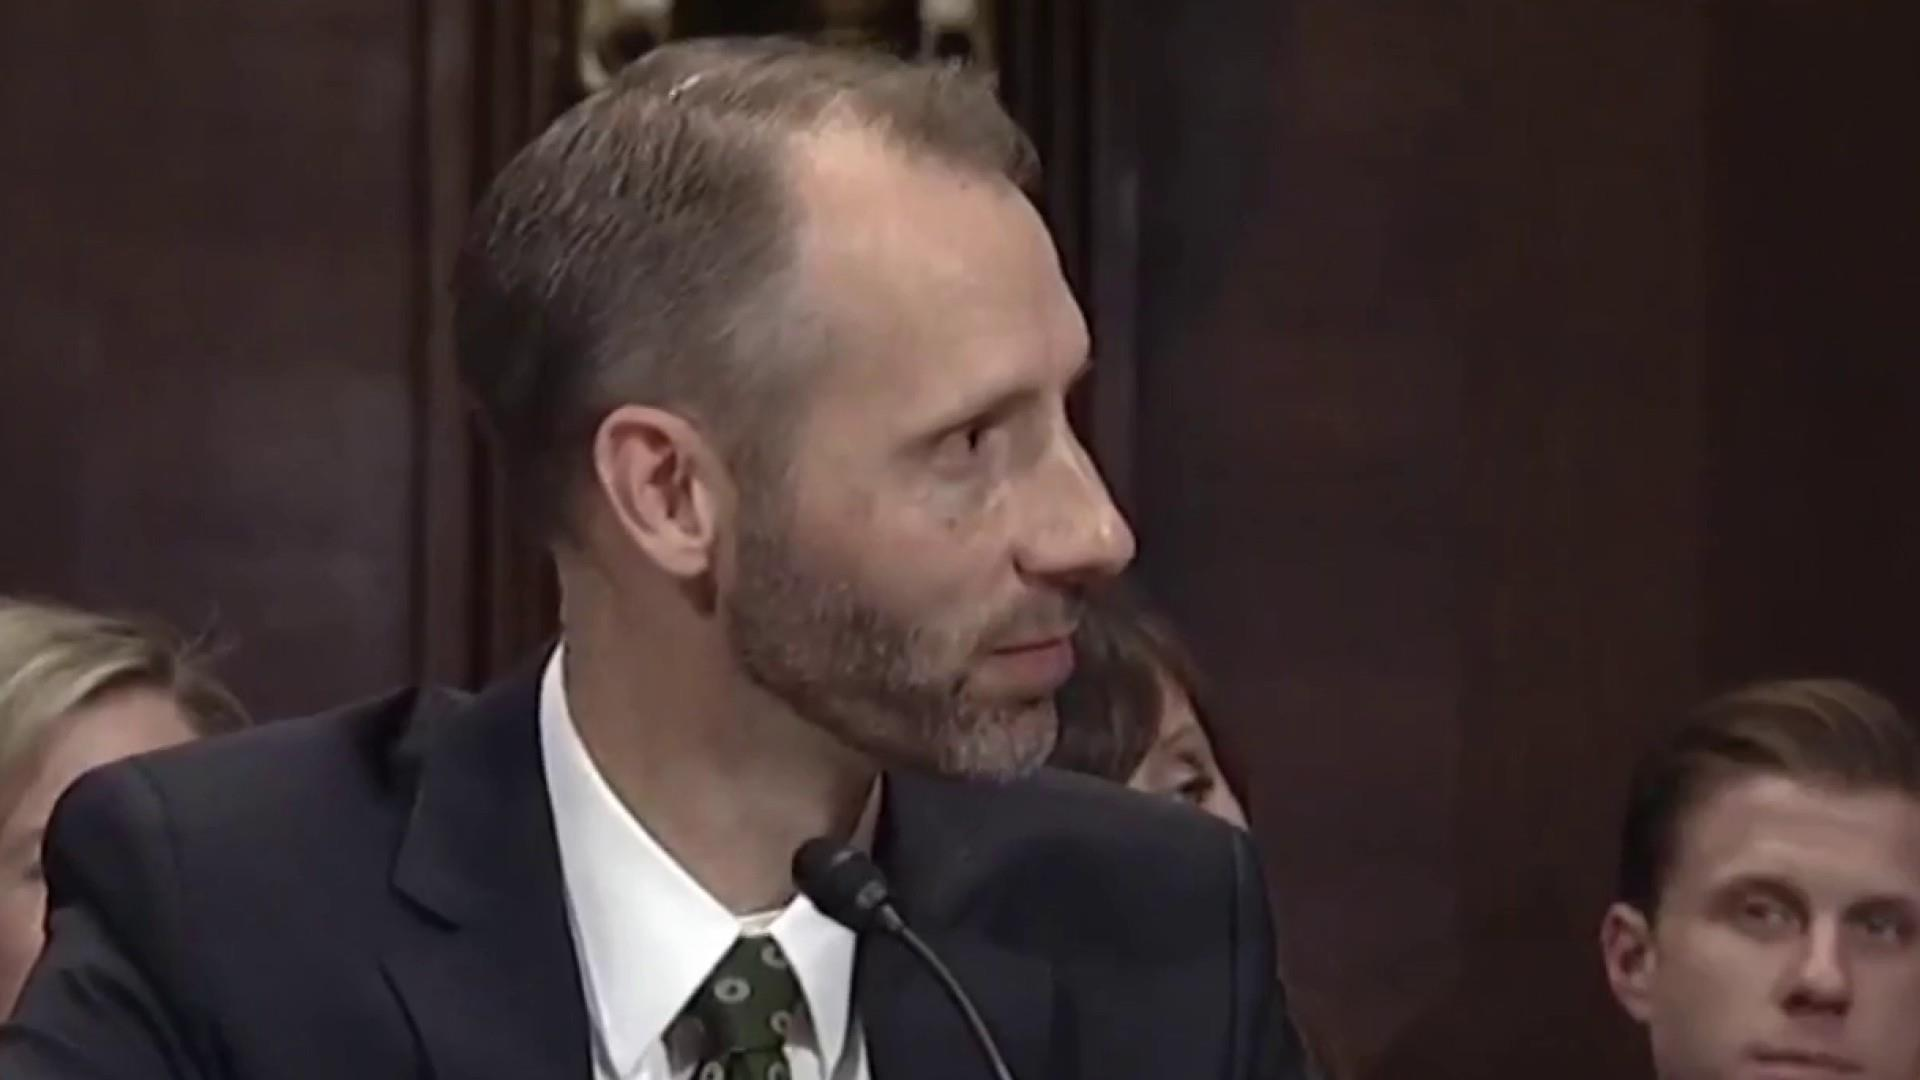 Why can't Trump's judicial nominee answer basic legal questions?